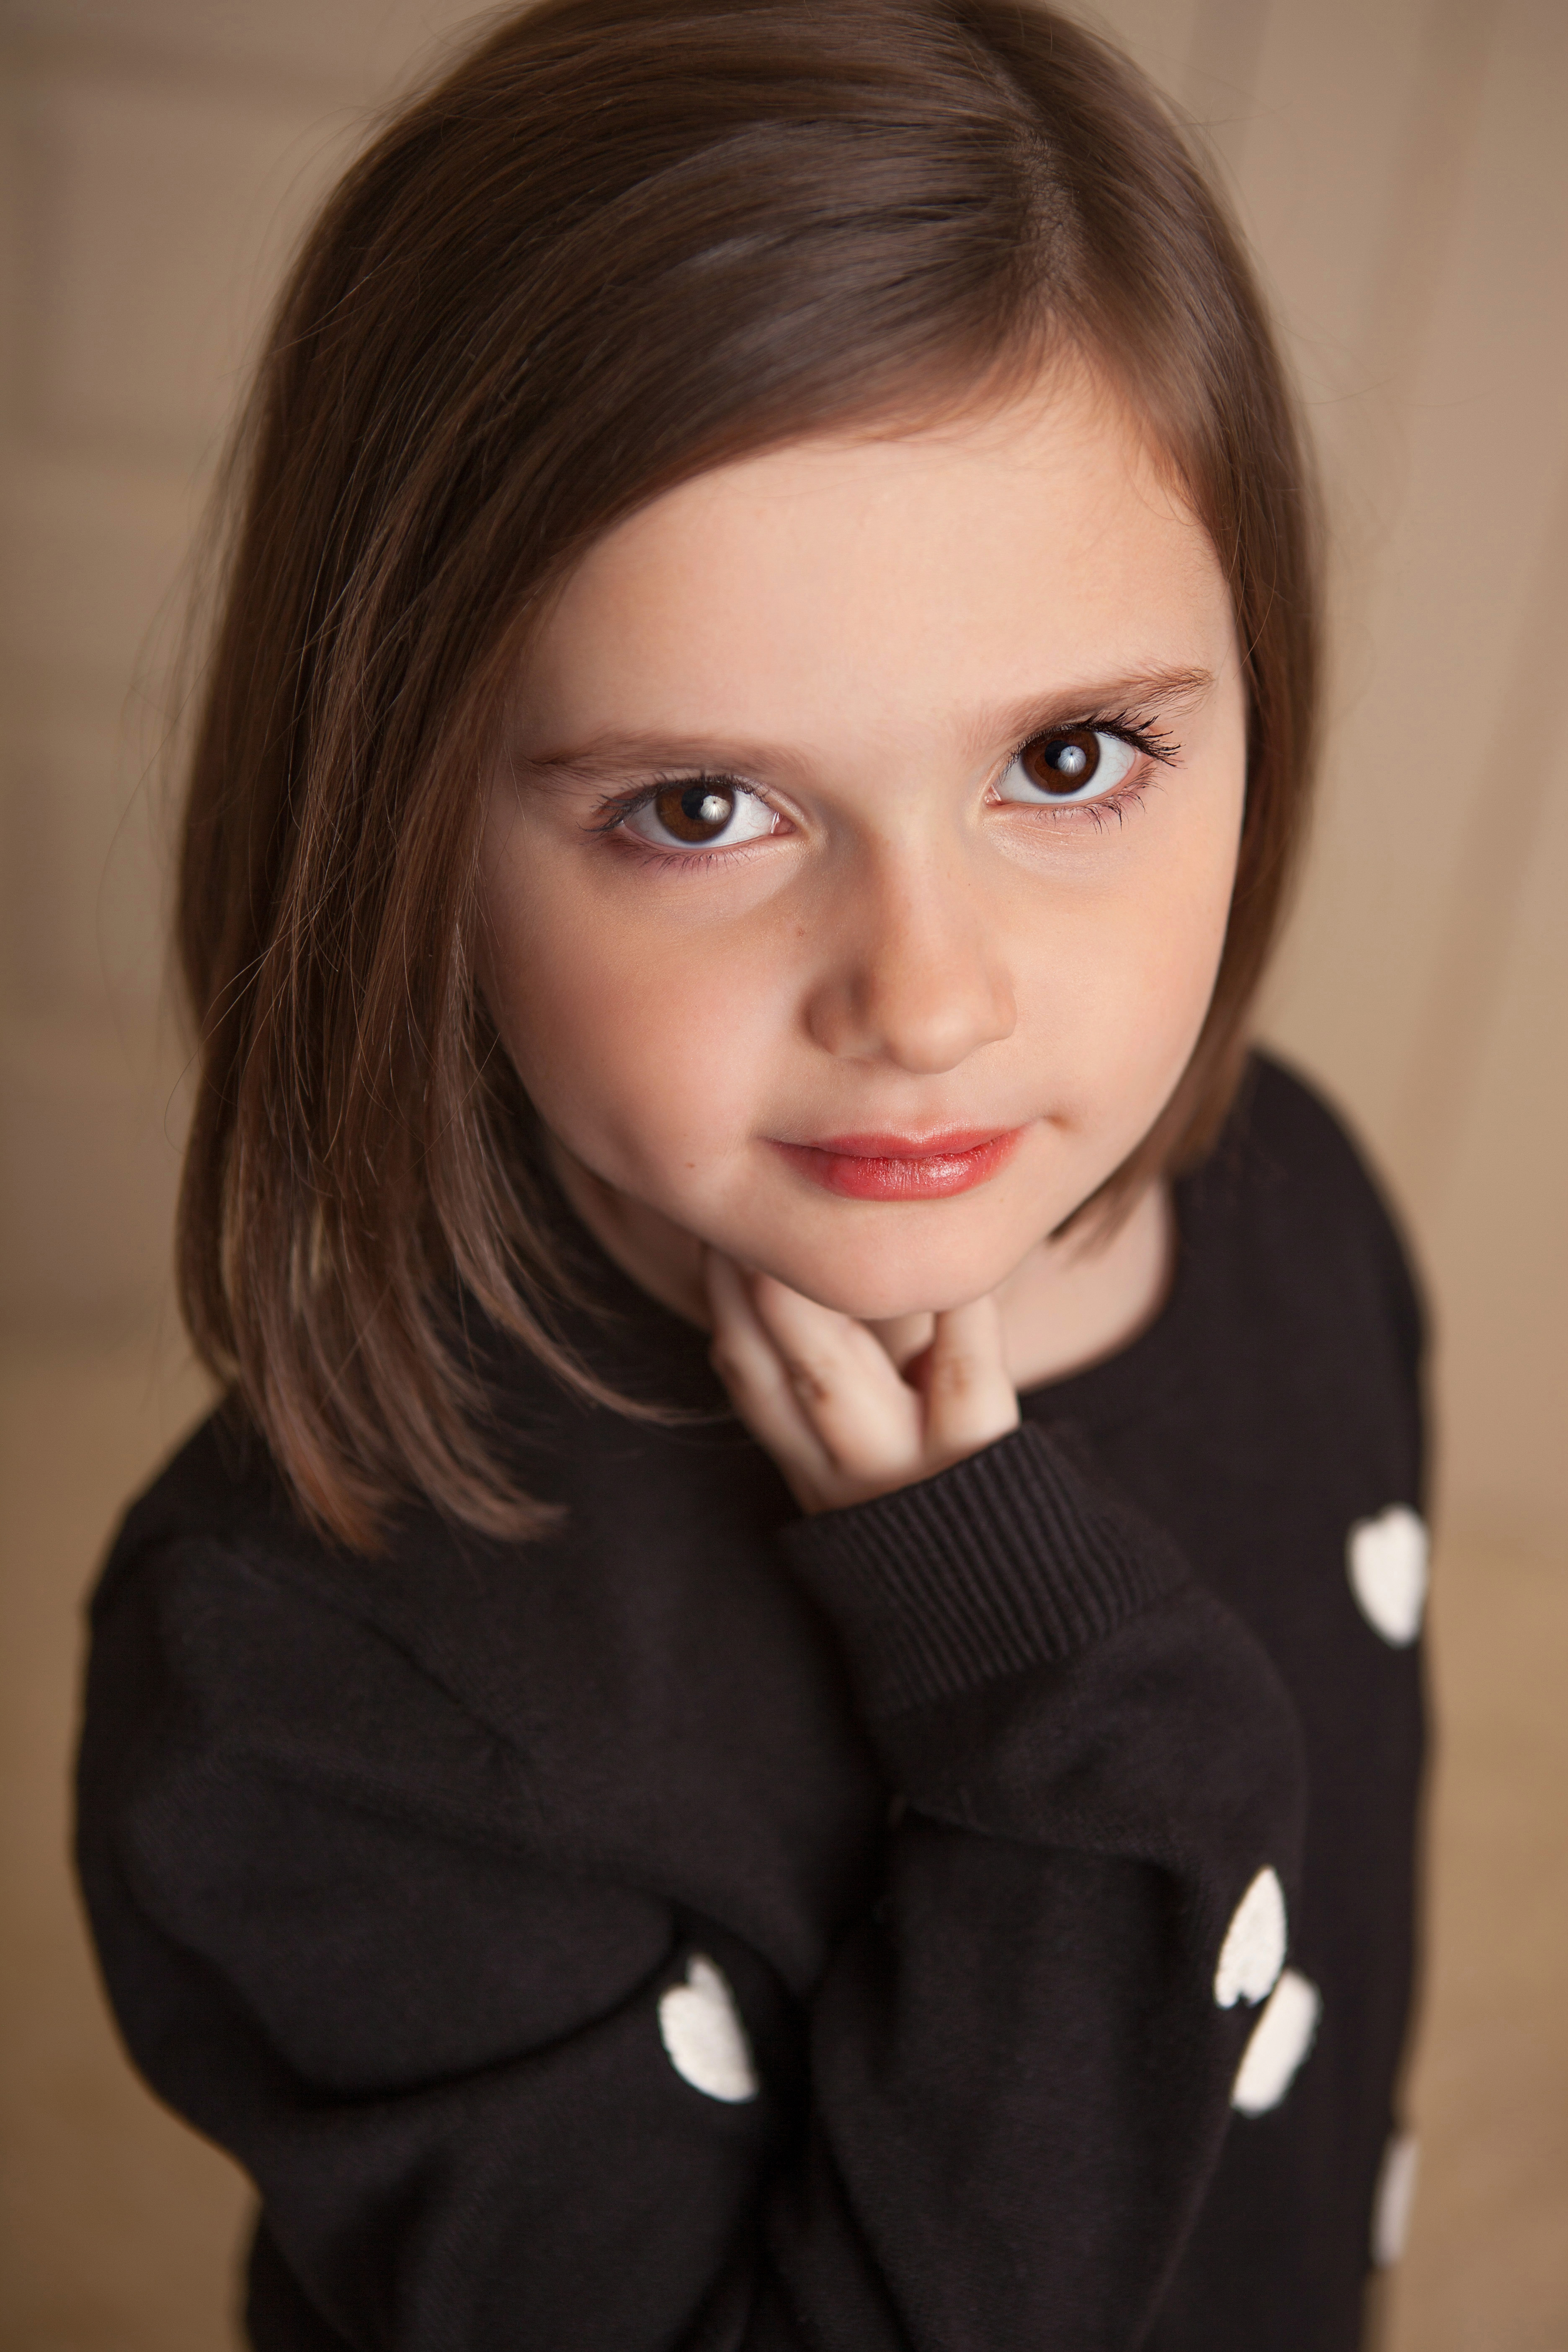 Child Actors with dimples